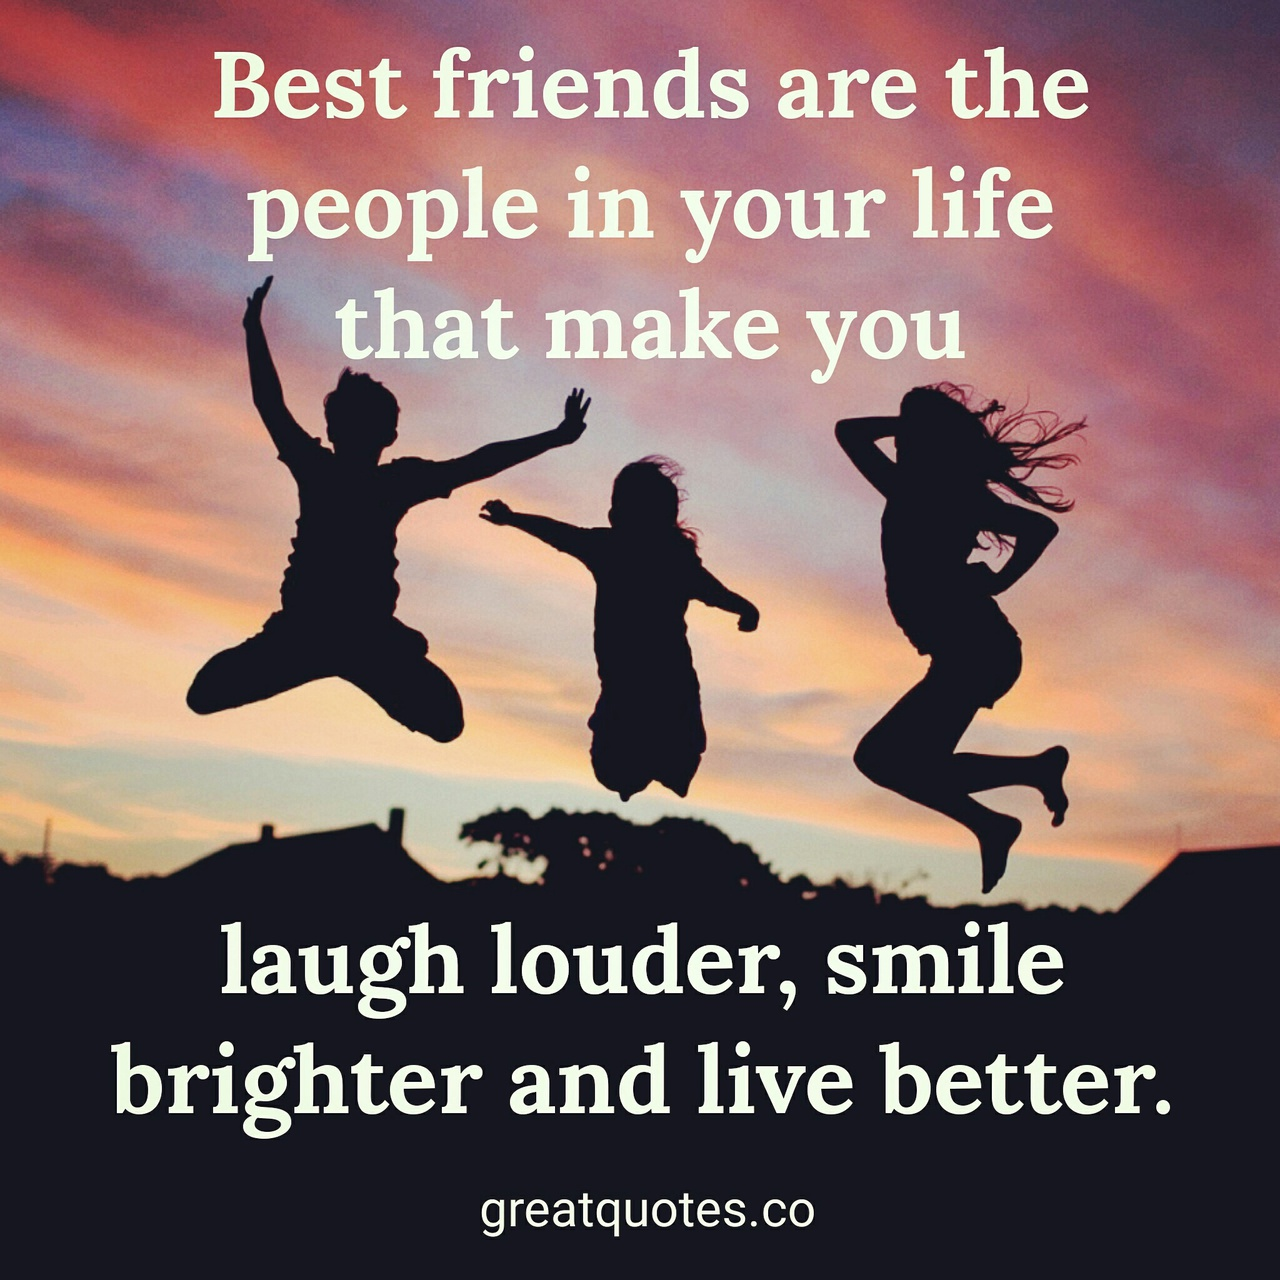 best friends are the people in your life that make you laugh